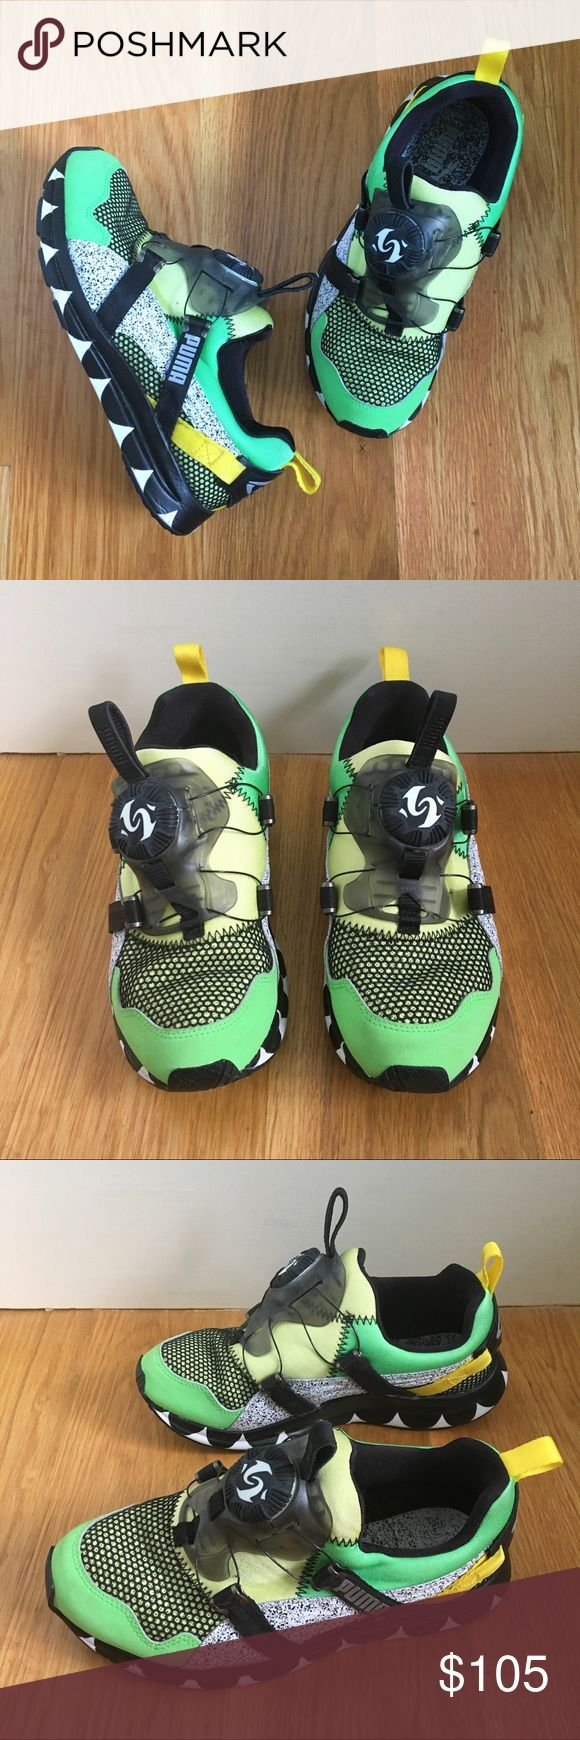 Limited Edition Puma Disc System Sneakers - Limited edition Puma disc system sneakers - Green & yellow with black and white speckled design on sides - Sold out everywhere - Never worn, in perfect condition Puma Shoes Sneakers